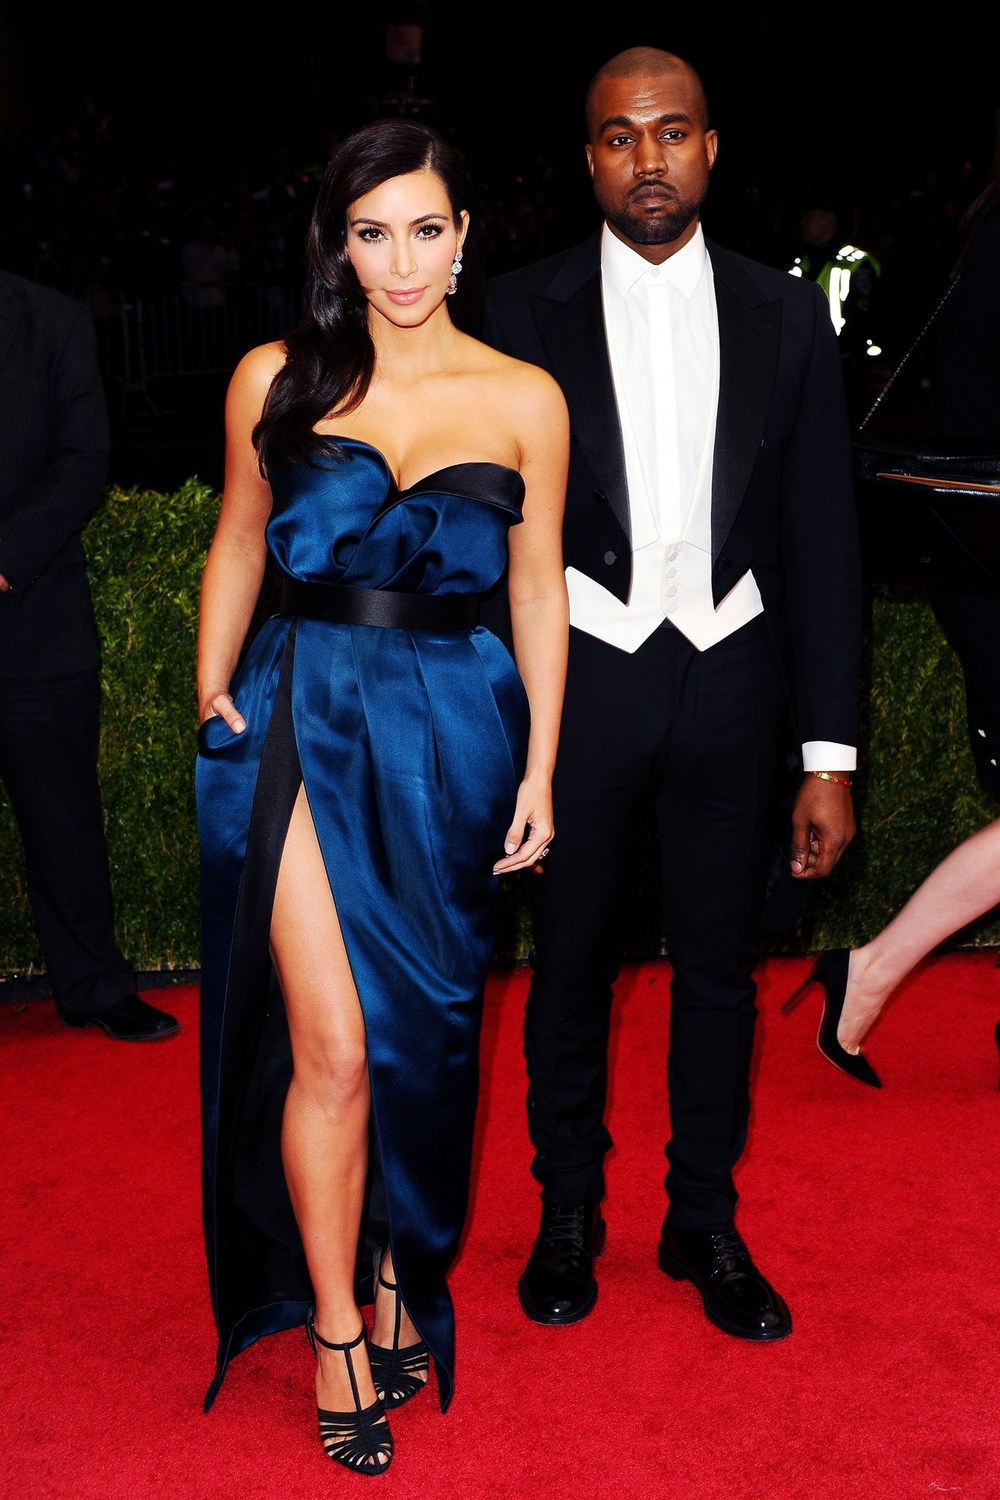 Kim Kardashian and Kanye West both wore Lanvin.